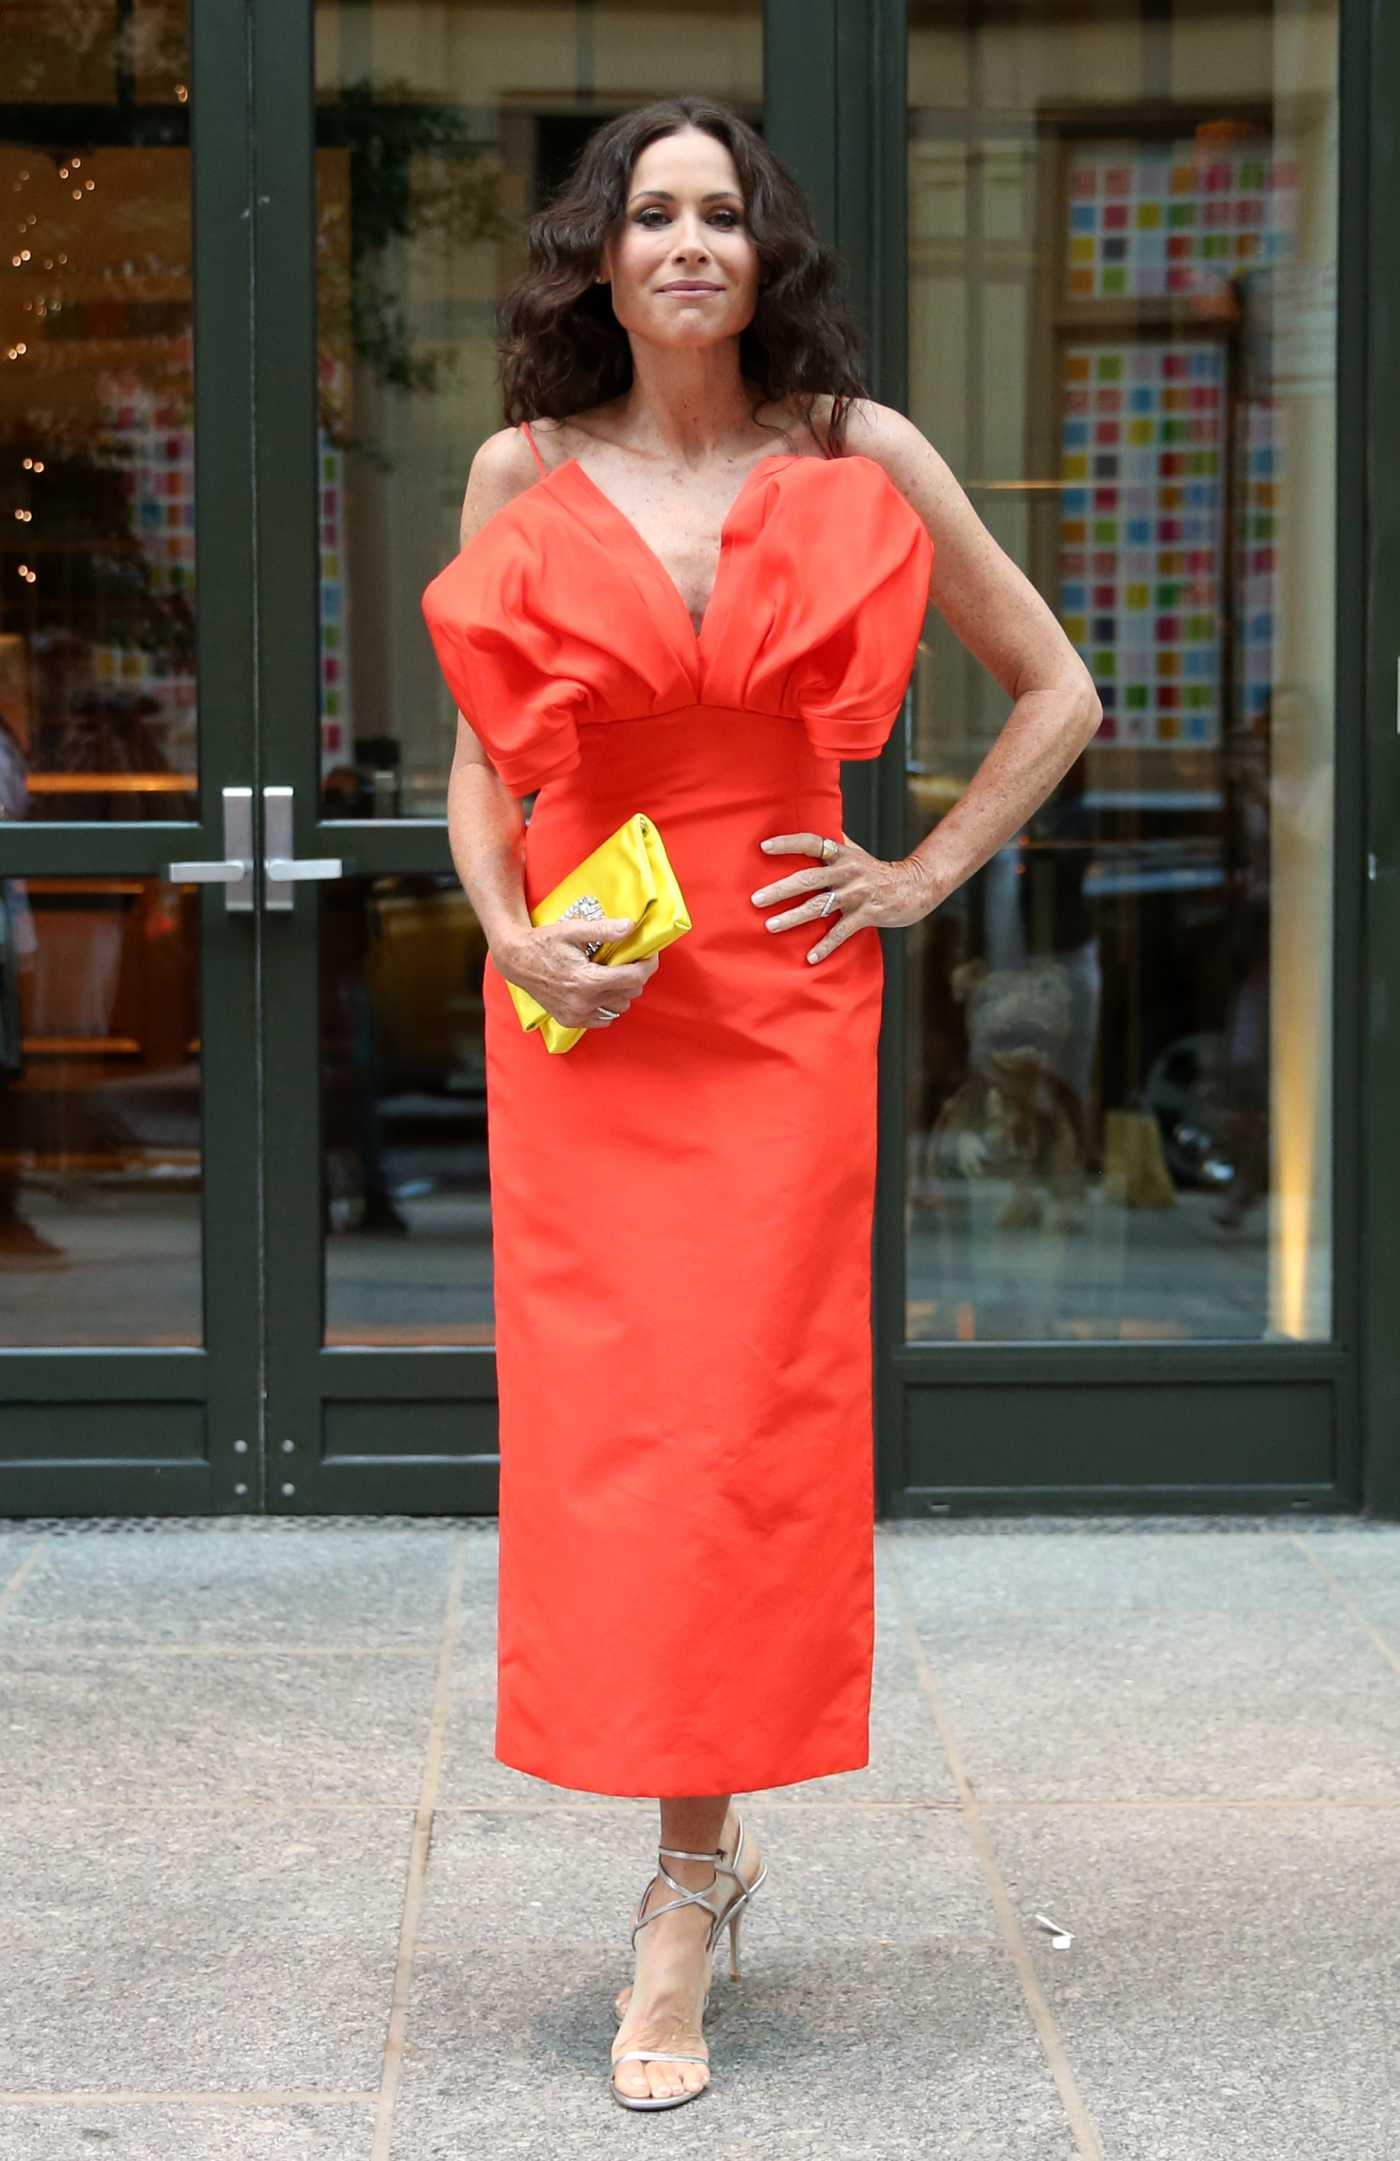 Minnie Driver in a Red Dress Arrives for the Premiere of Modern Love in New York 08/02/2021